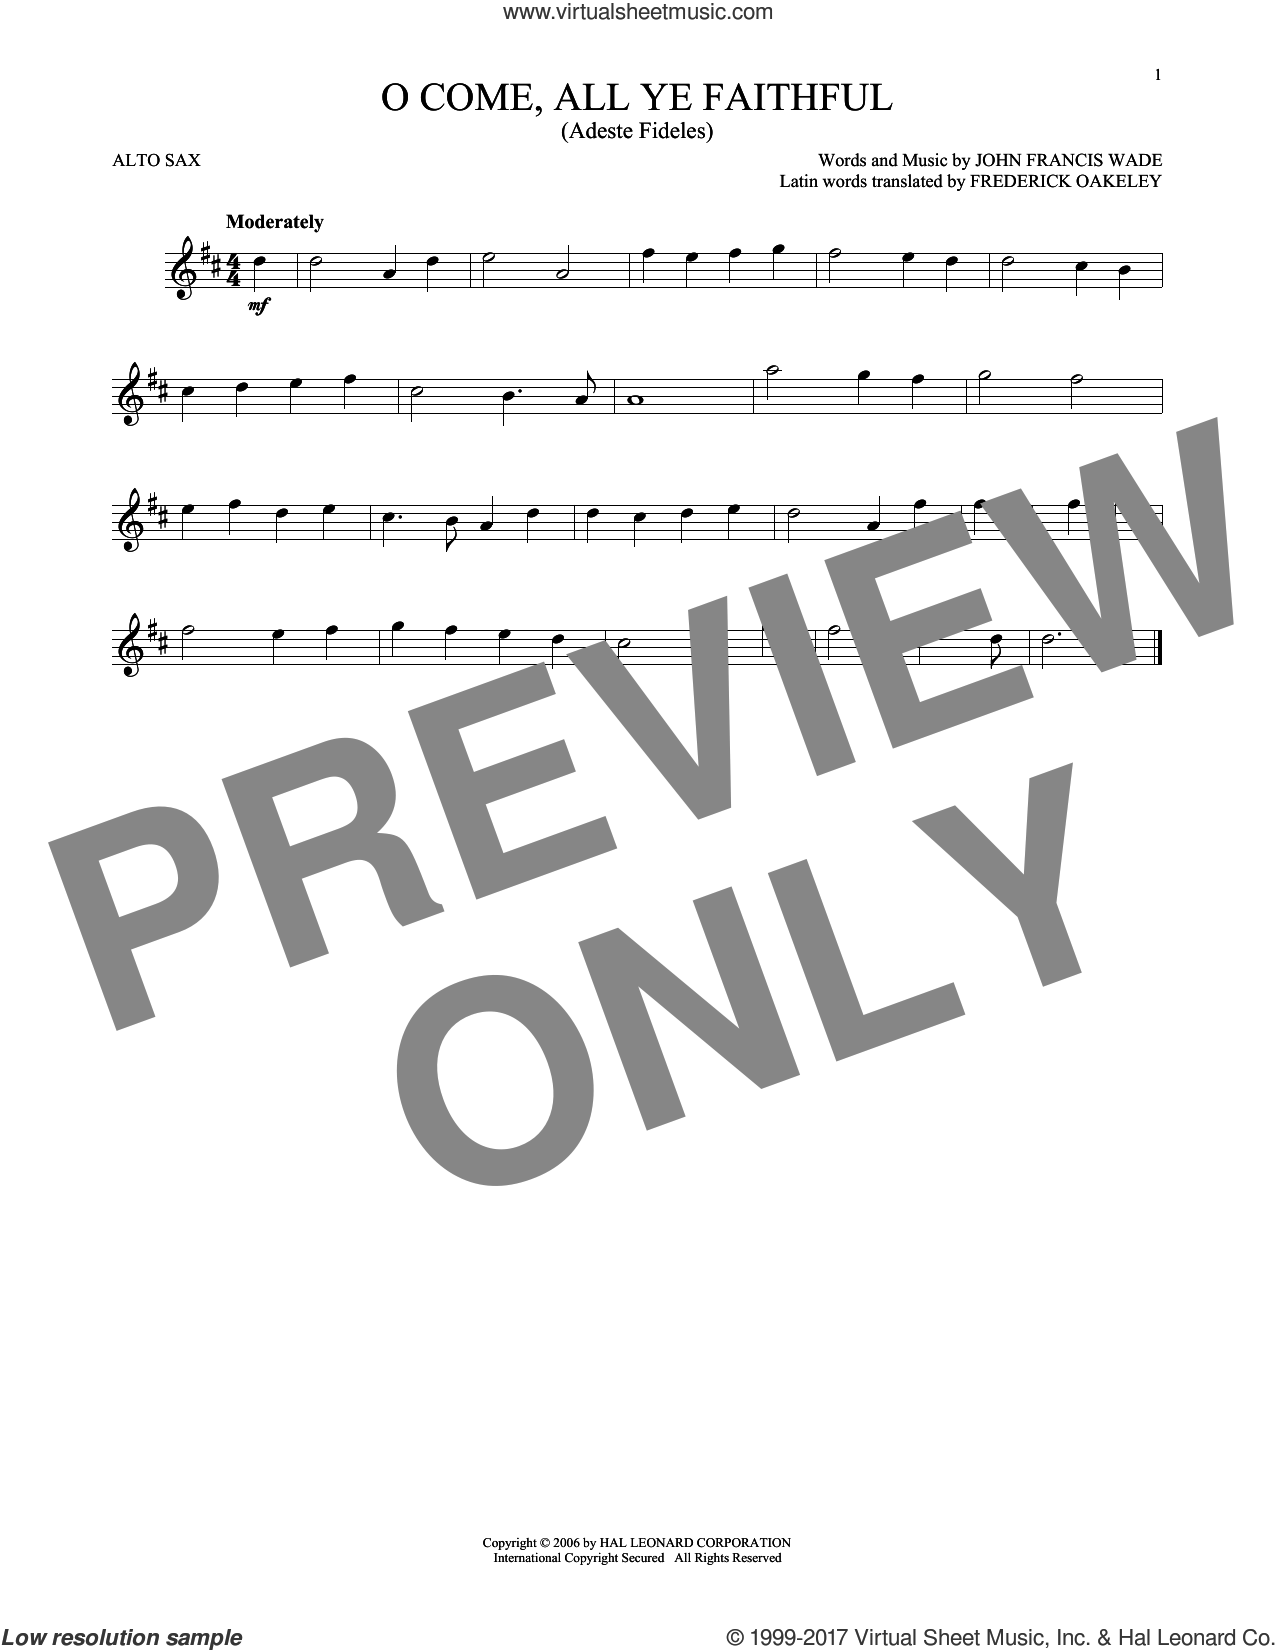 O Come, All Ye Faithful sheet music for alto saxophone solo by John Francis Wade, intermediate. Score Image Preview.